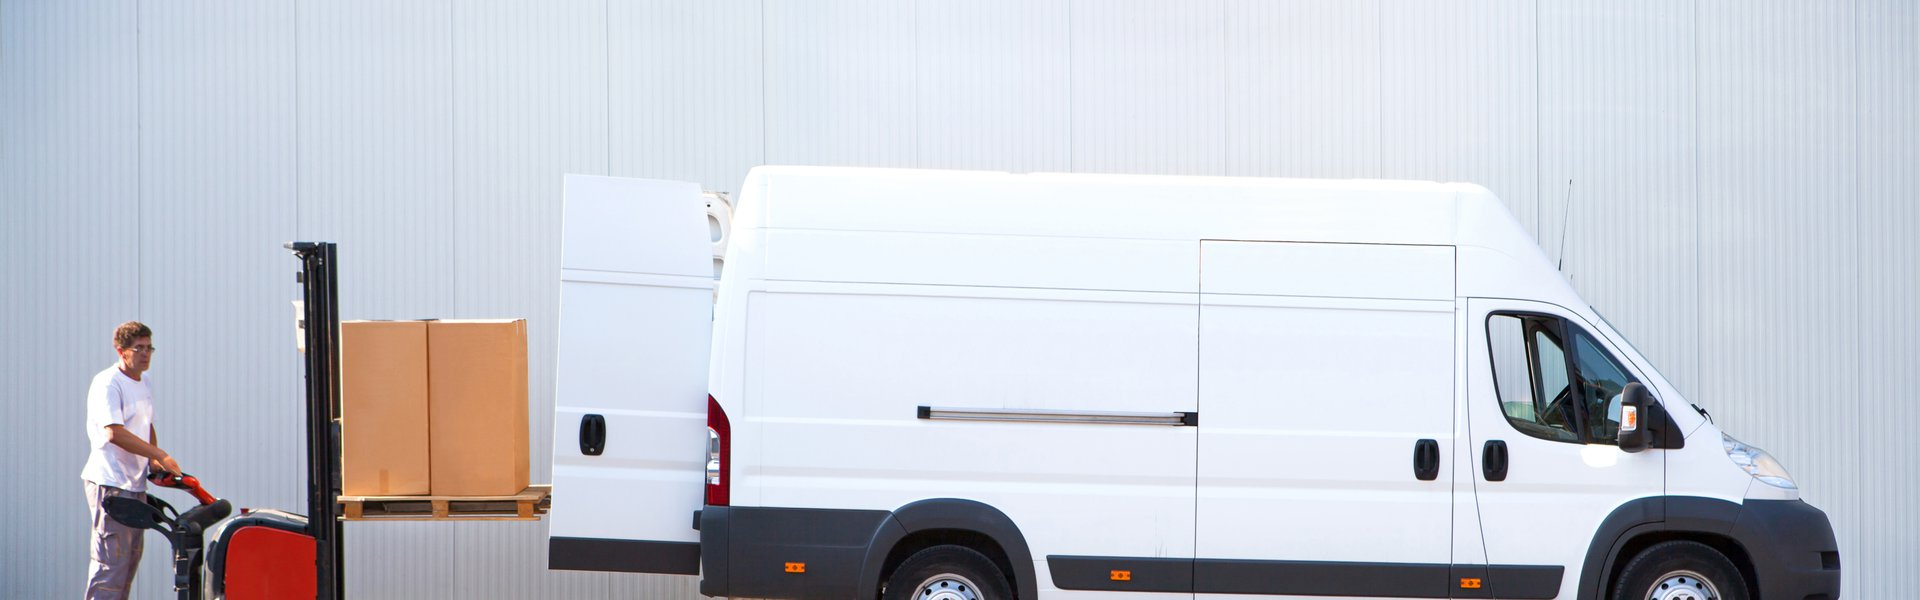 Courier is loading the van with parcels. p800